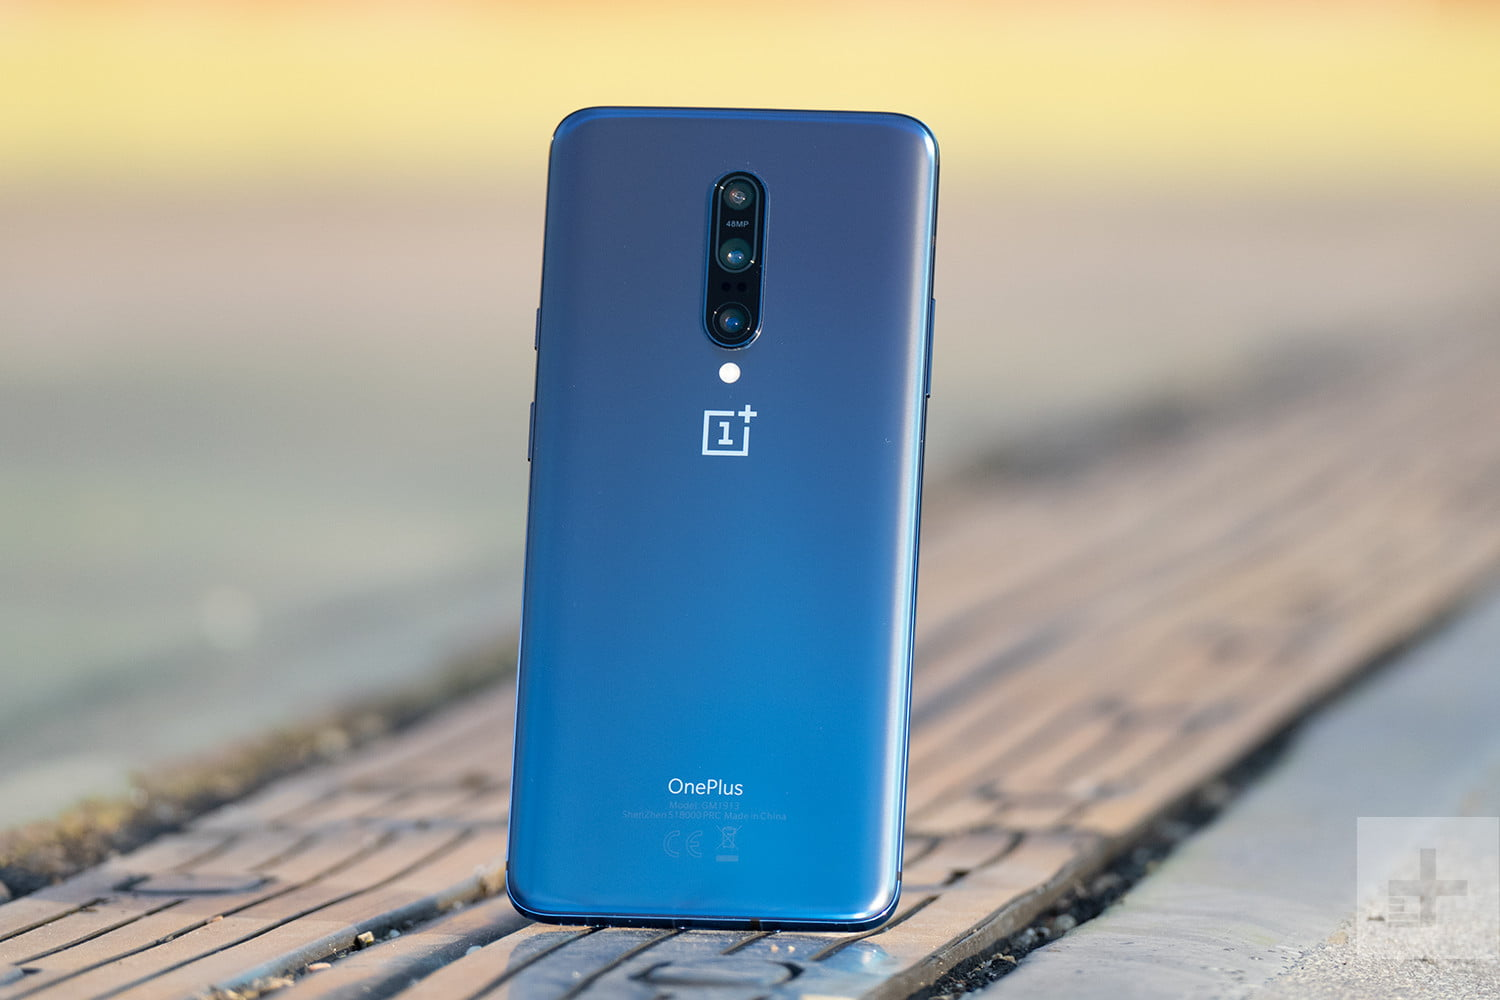 6b53c9d7c11 OnePlus Is Losing Its Best Feature With The OnePlus 7 Pro In The U.S. |  Digital Trends